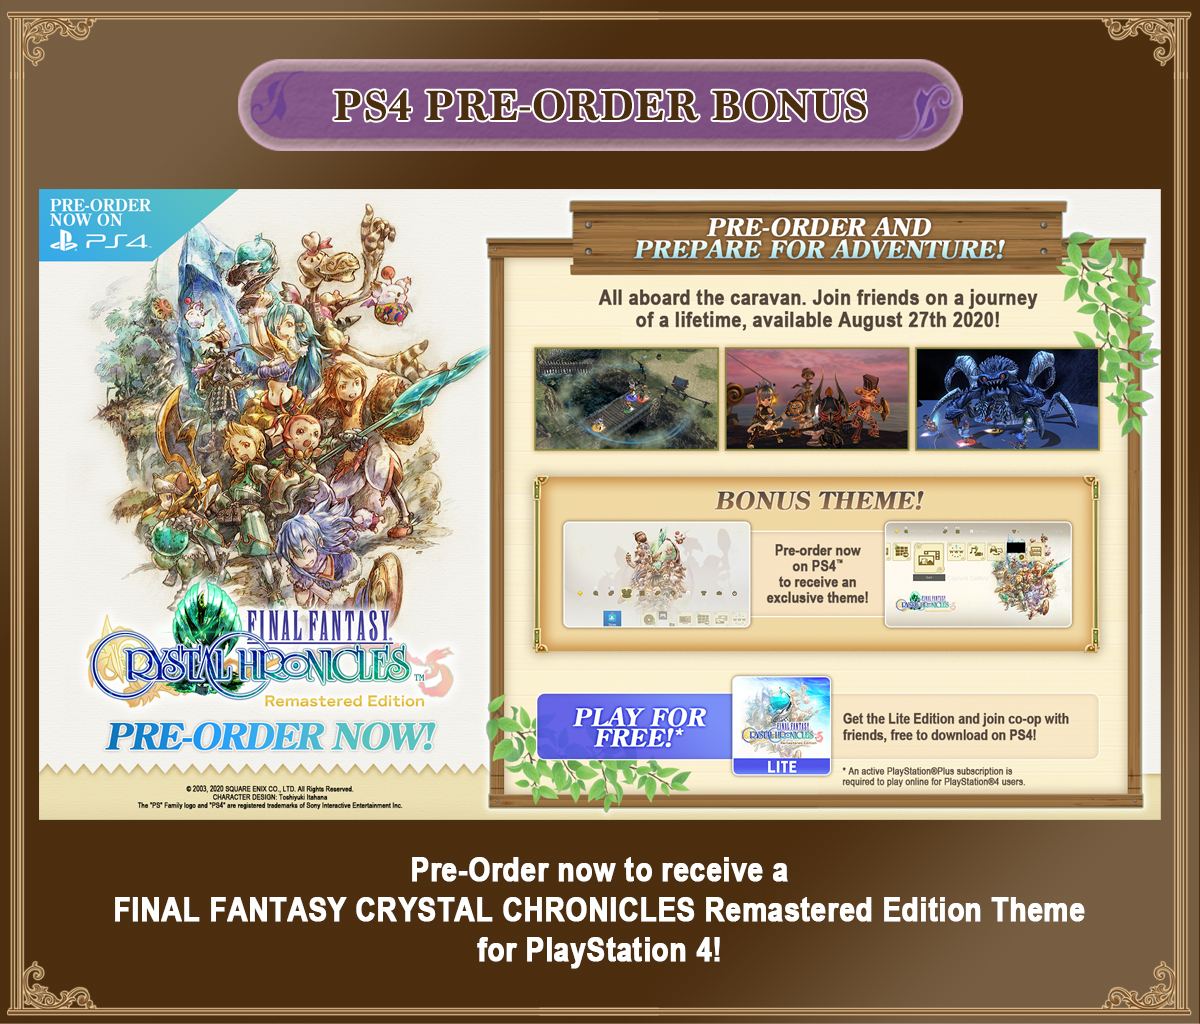 Pre-Order now to receive a FINAL FANTASY CRYSTAL CHRONICLES Remastered Edition Theme for PlayStation 4!